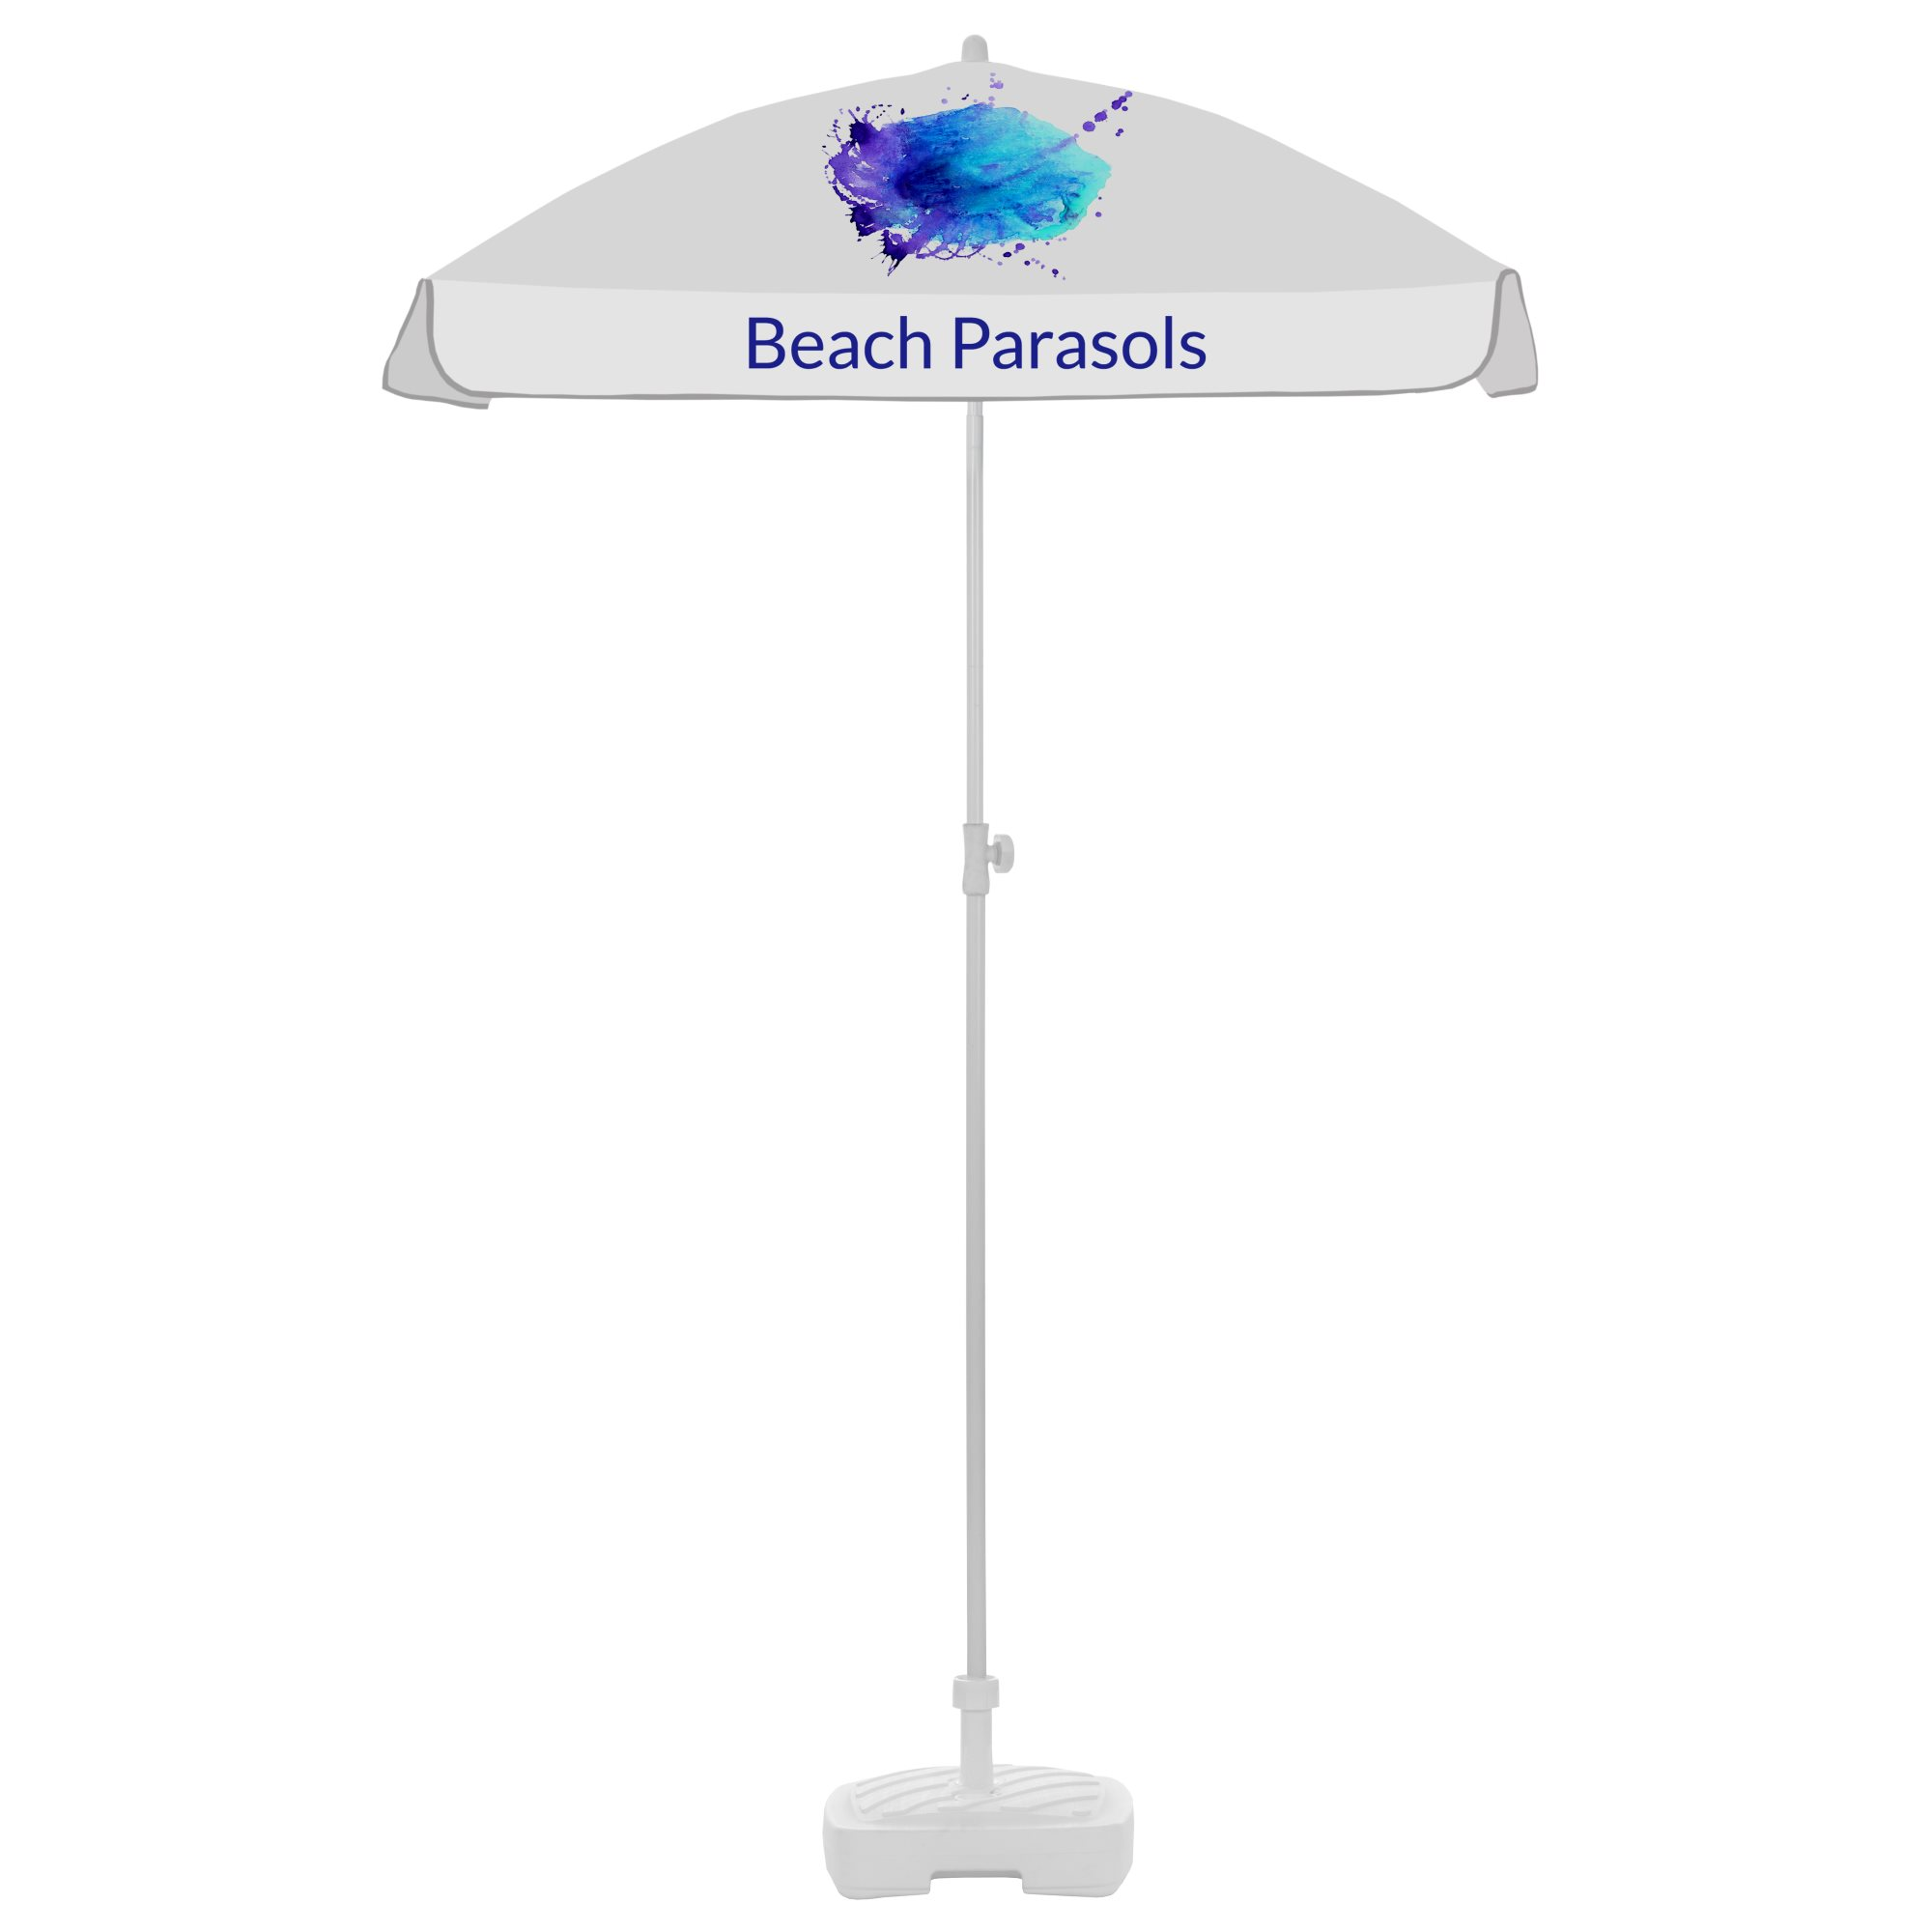 8. Beach Parasols Square 1,35m with fairing